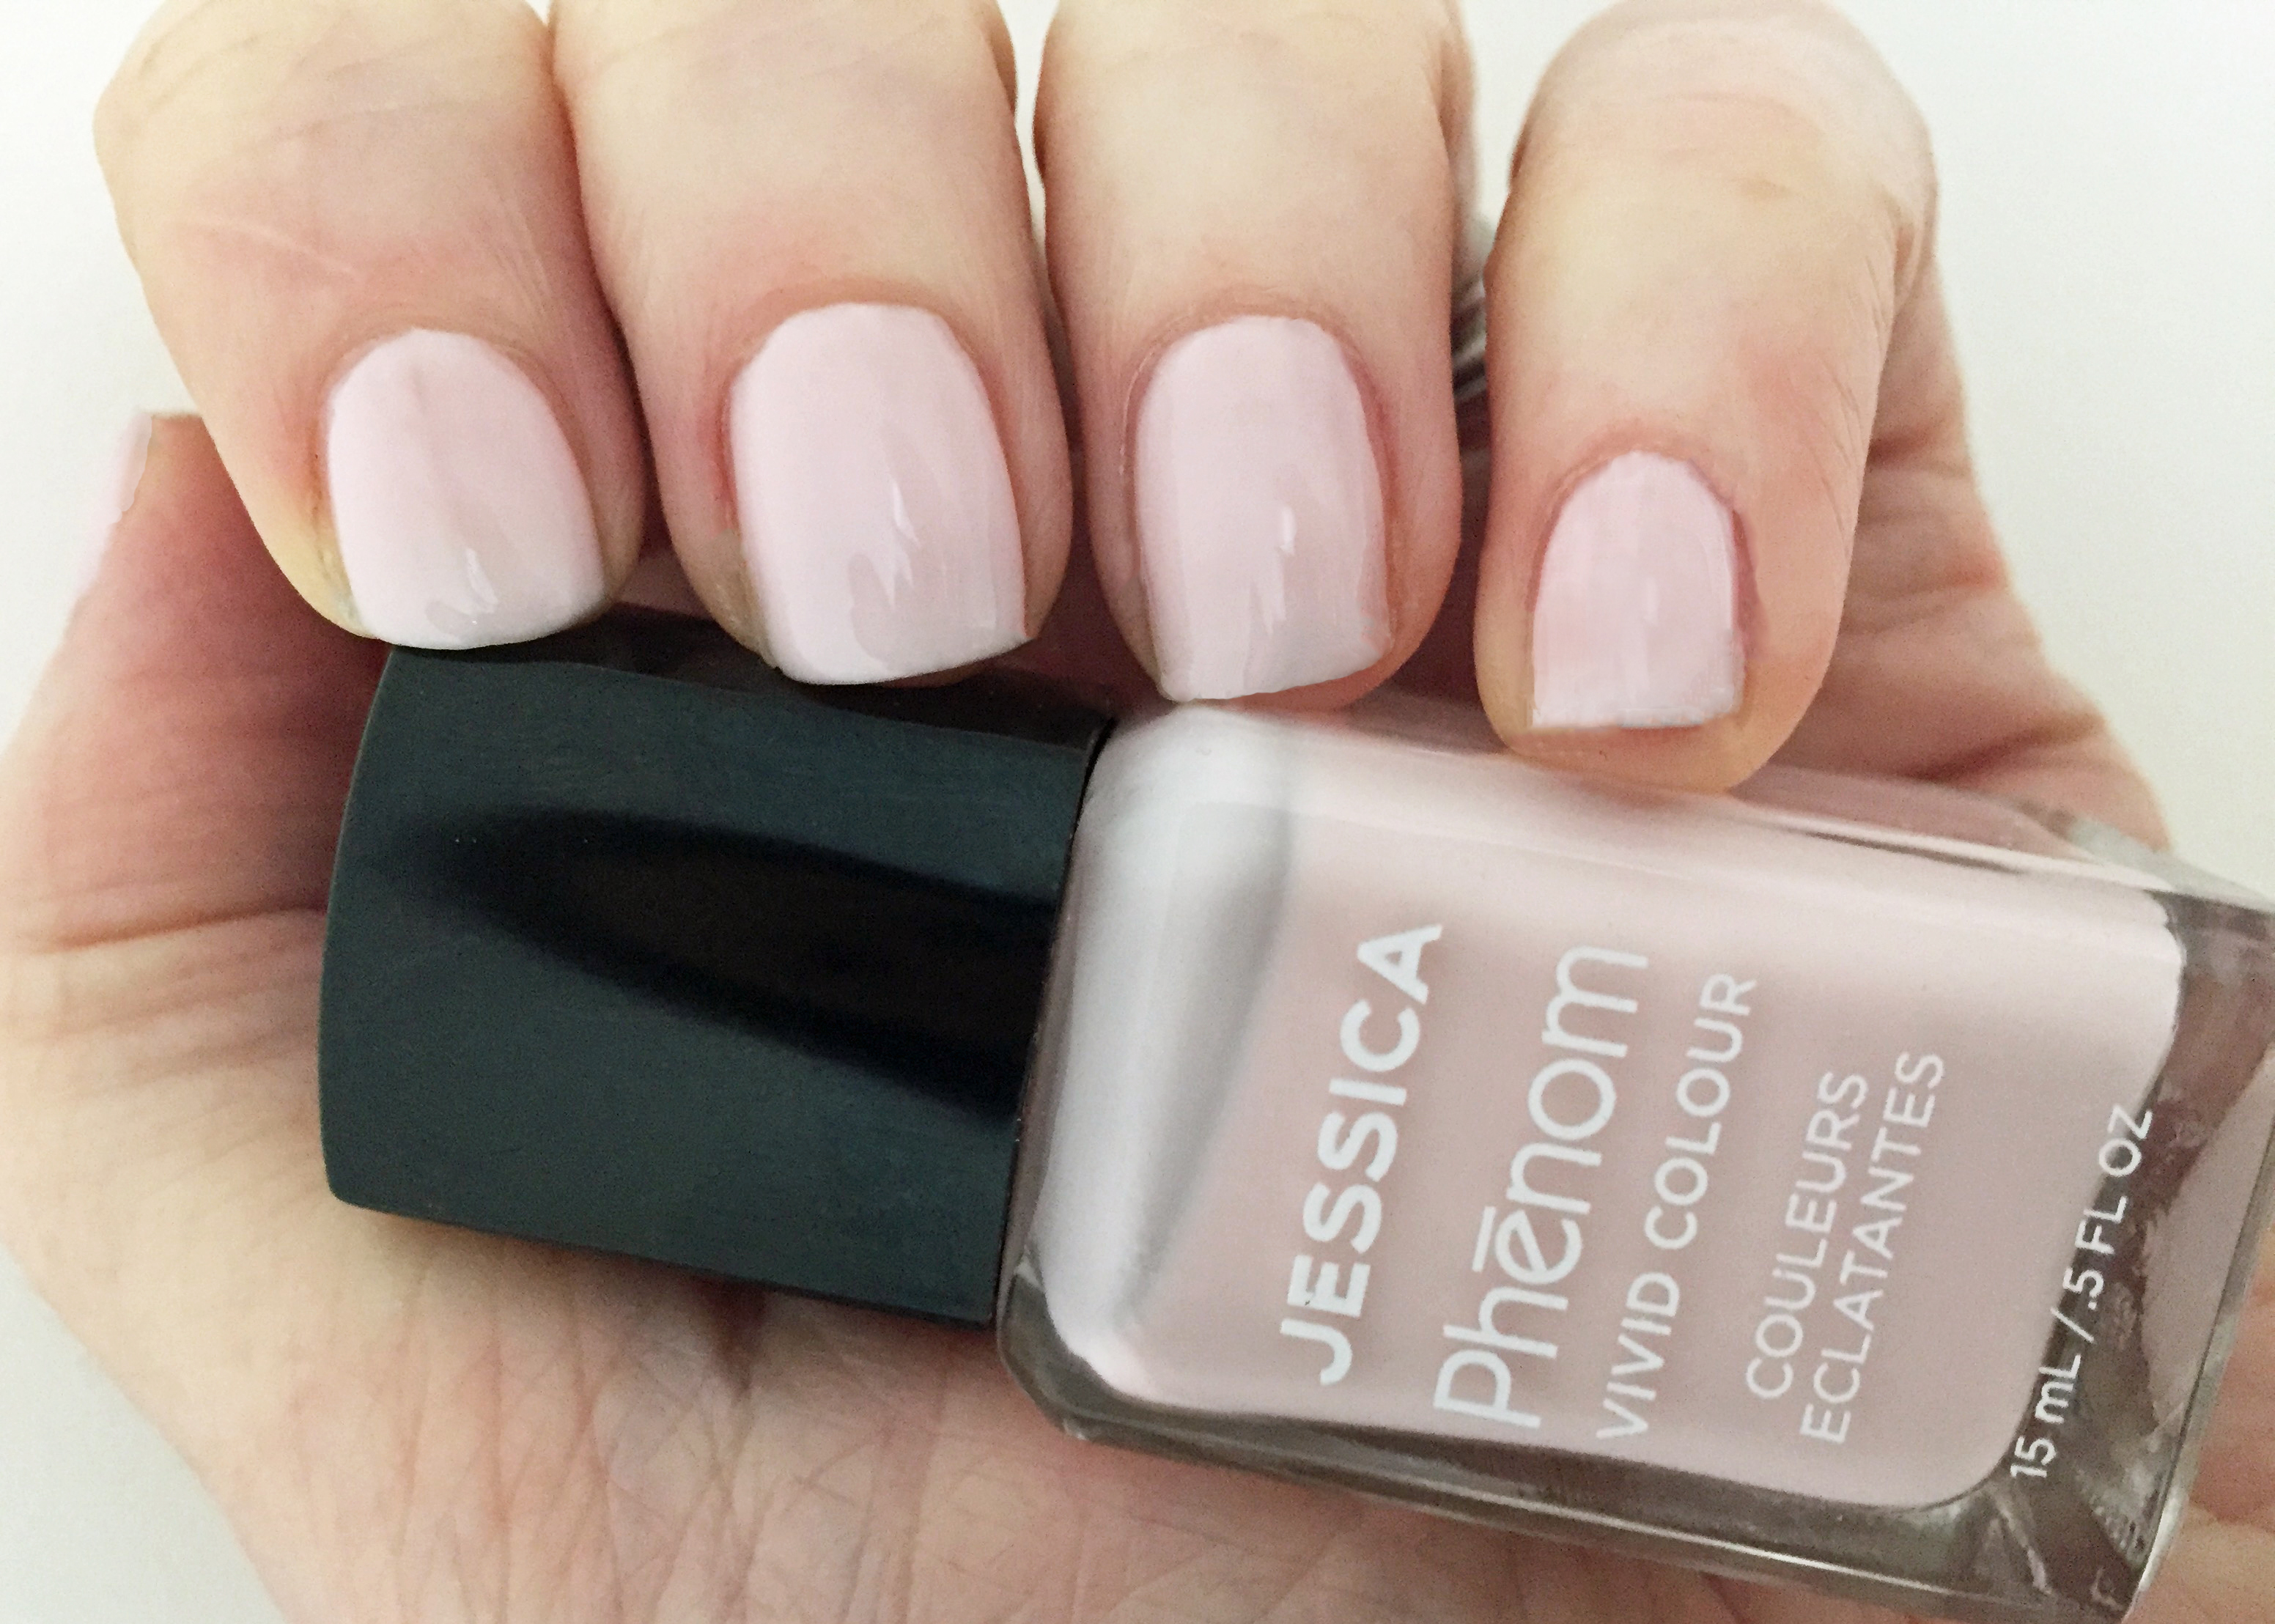 Jessica Phenom Sheer Showstoppers Review & Swatches - Really Ree